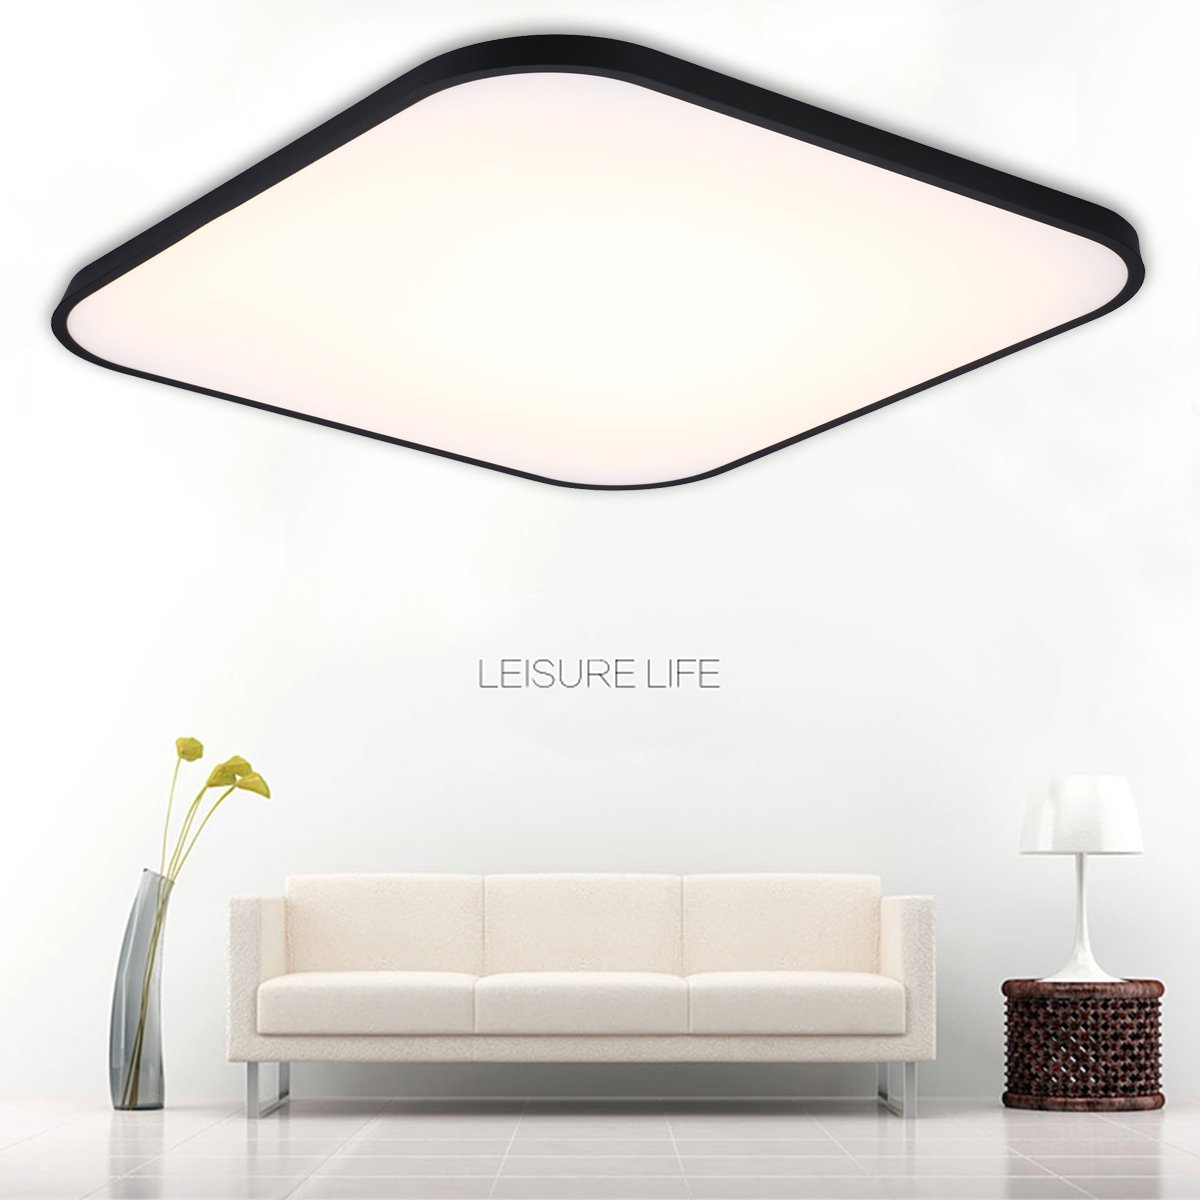 FLOUREON 24 ~ 29.5 Inch Ultra-thin Flush Mount LED Ceiling Light Modern Home Ceiling Light Fixture Flush Mount Chandeliers Lighting with 2.4G Wireless Remote Control Infinite Dimming (24W, Black)